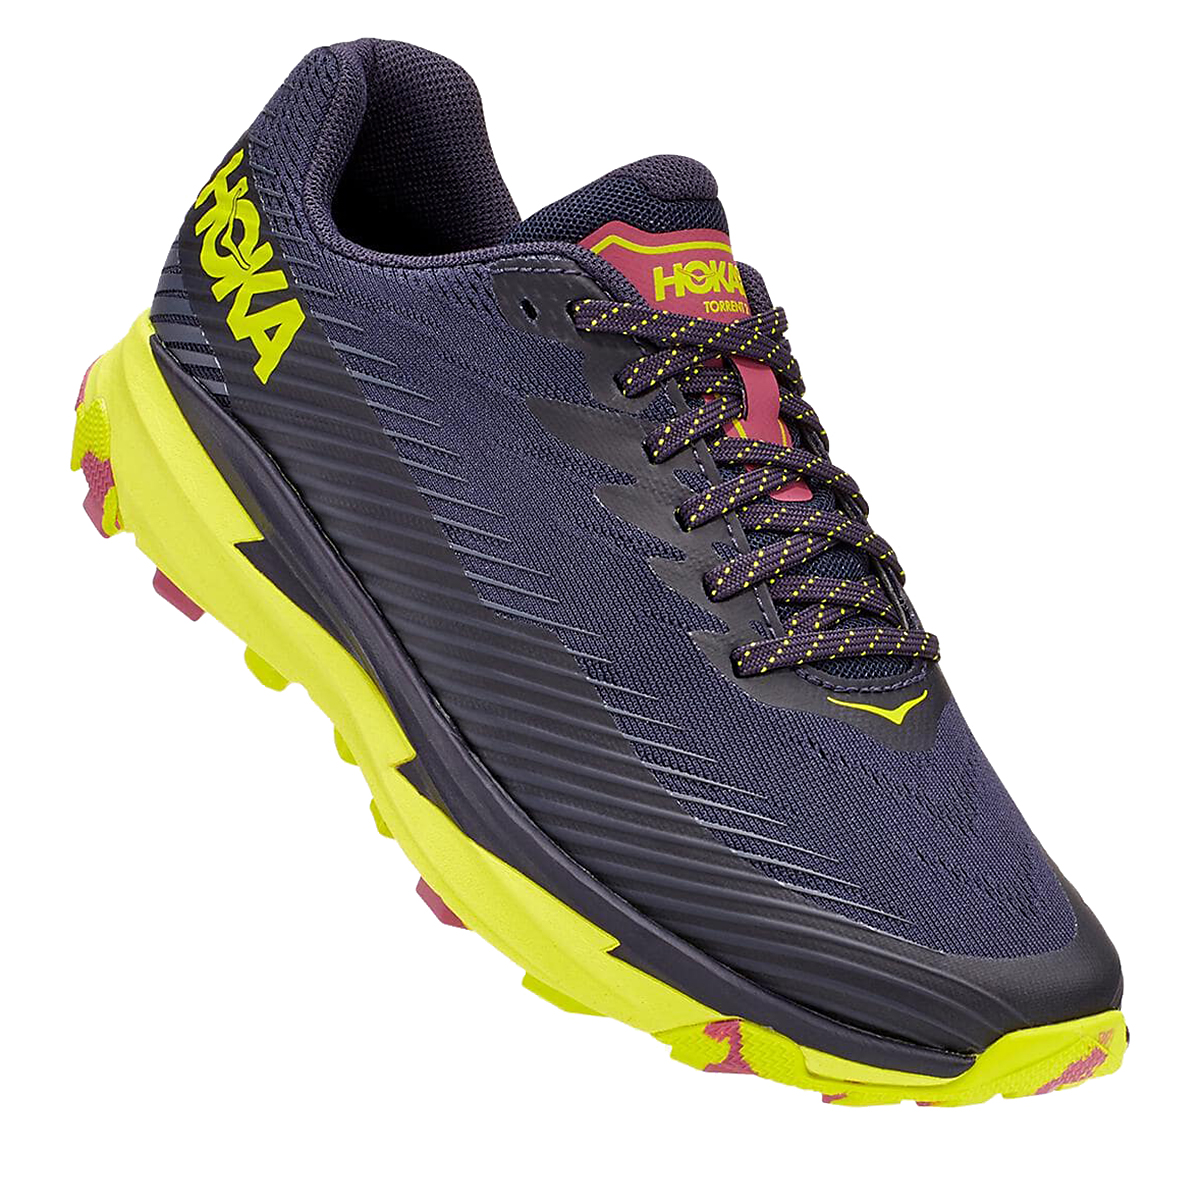 Women's Hoka One One Torrent 2 Trail Running Shoe - Color: Deep Well/Eve - Size: 5 - Width: Regular, Deep Well/Eve, large, image 2